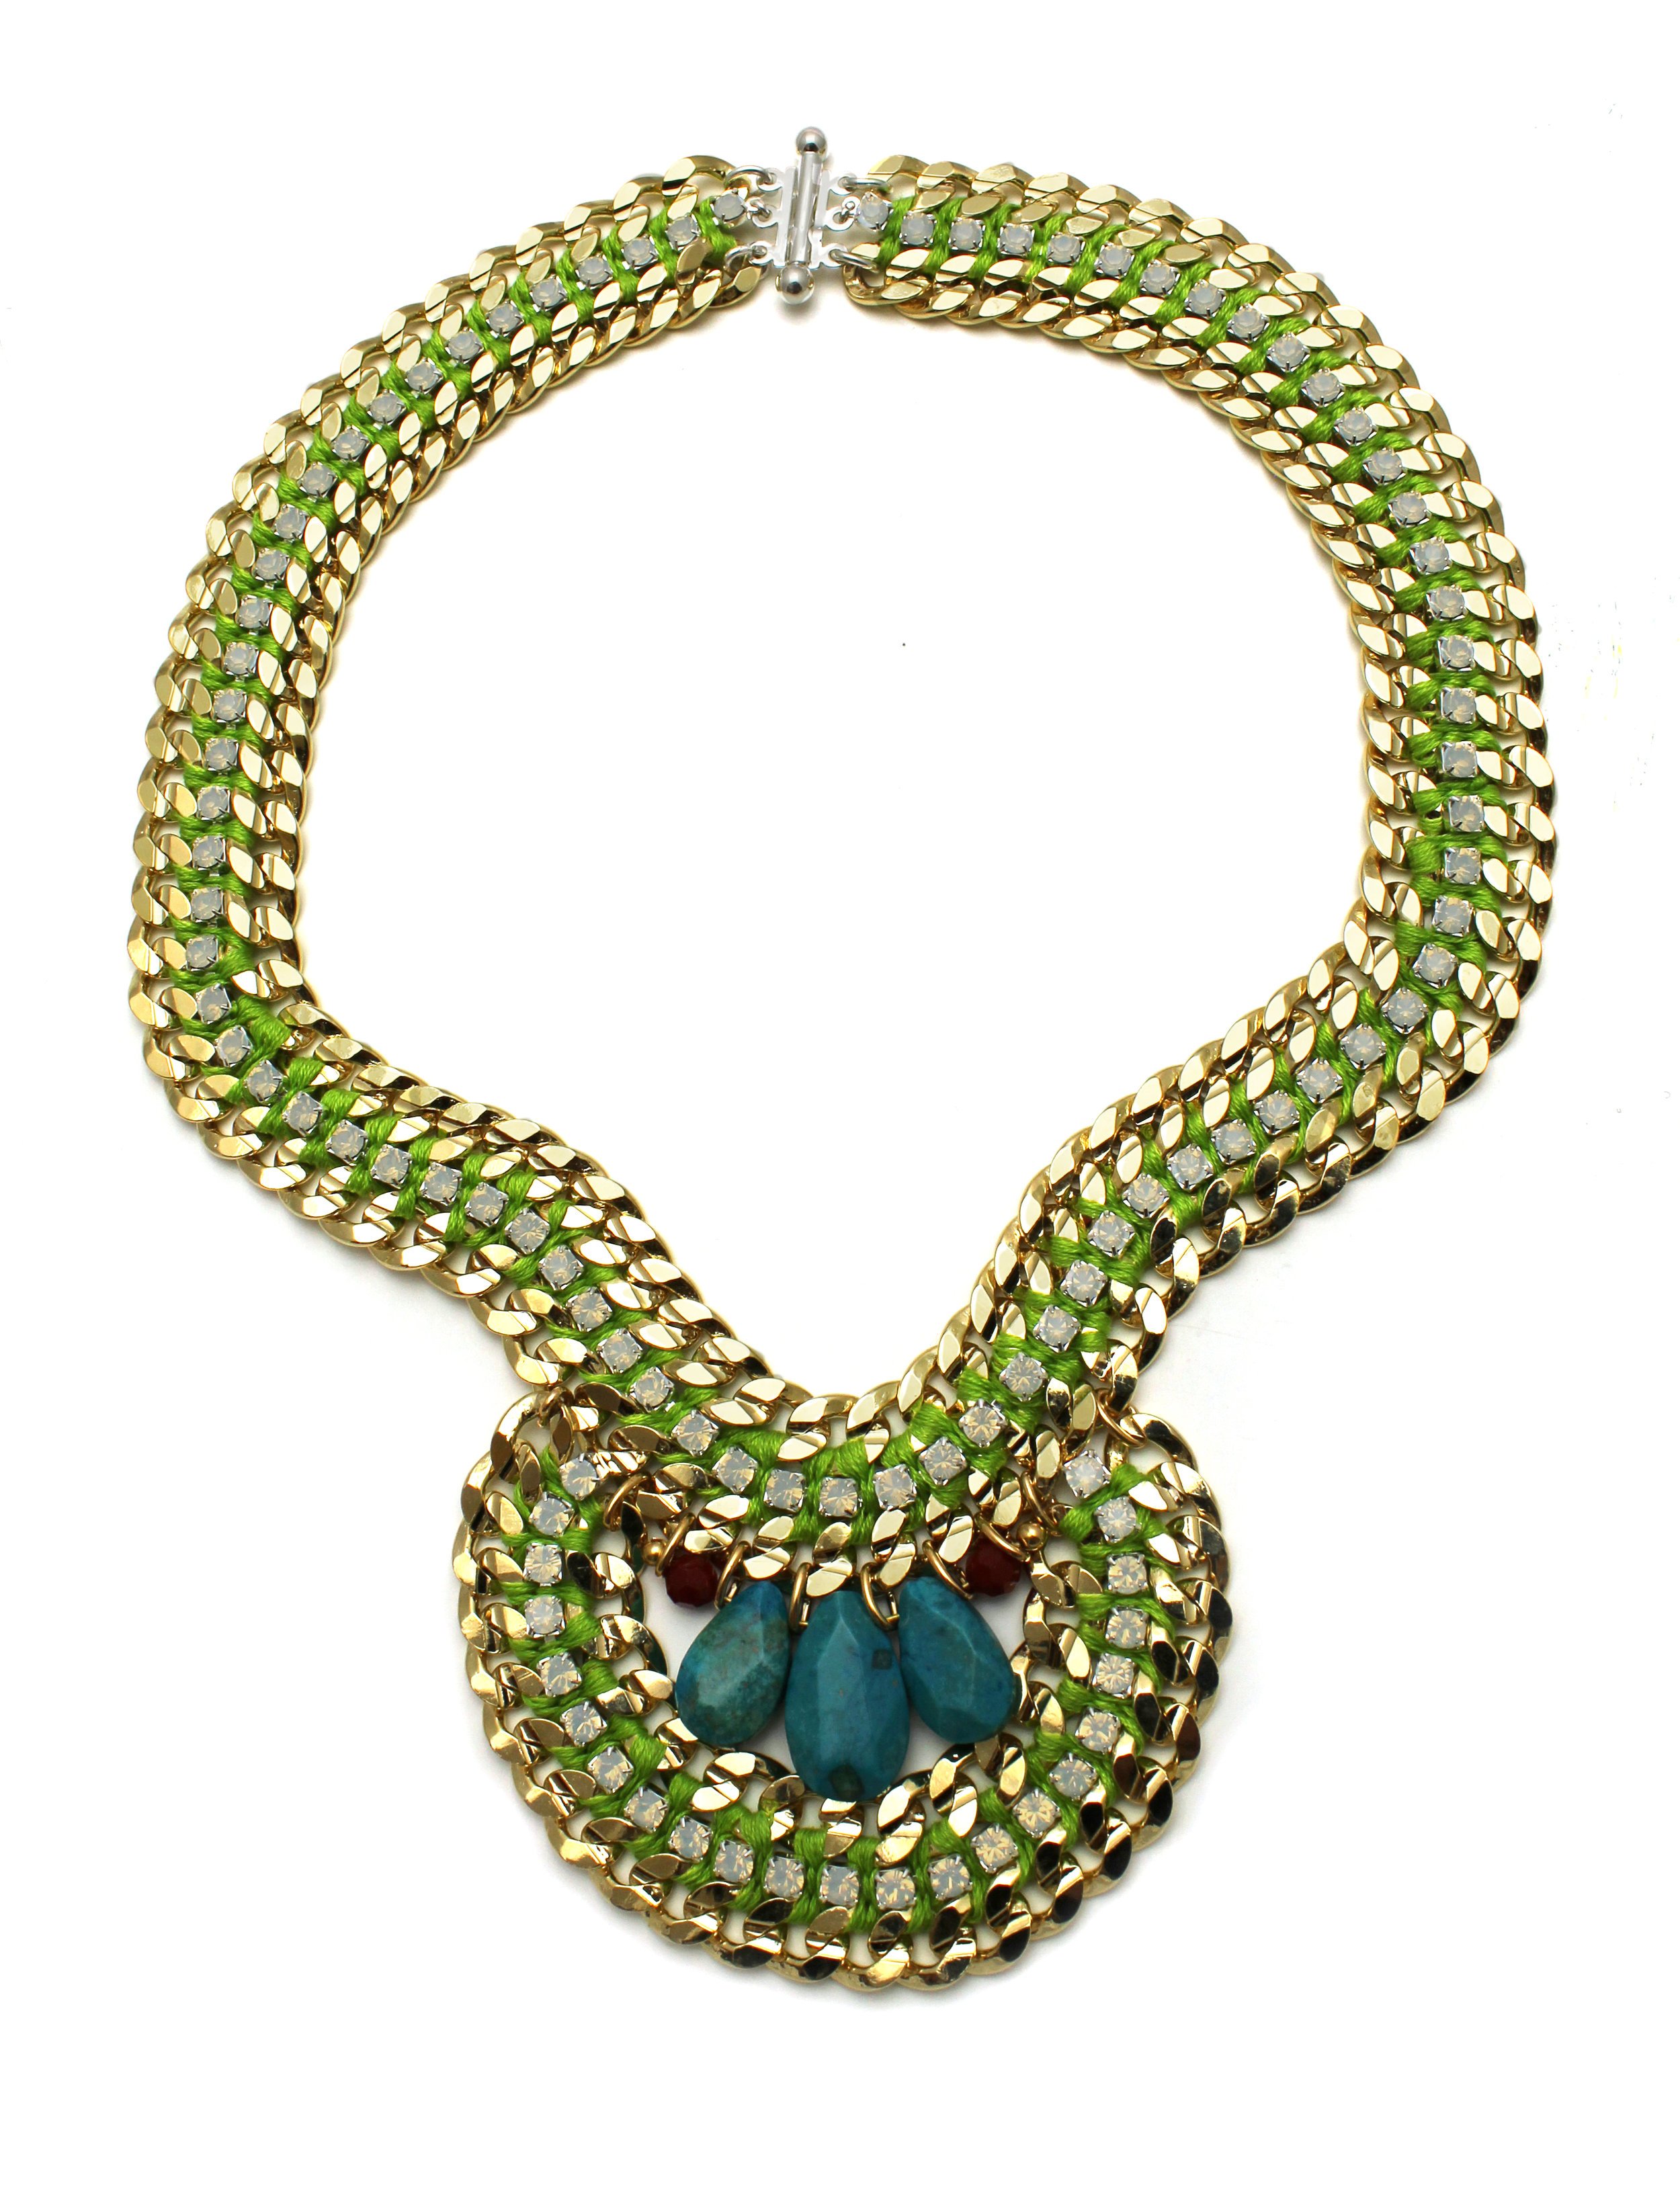 077 Turquoise & White Opal Lime Necklace.jpg